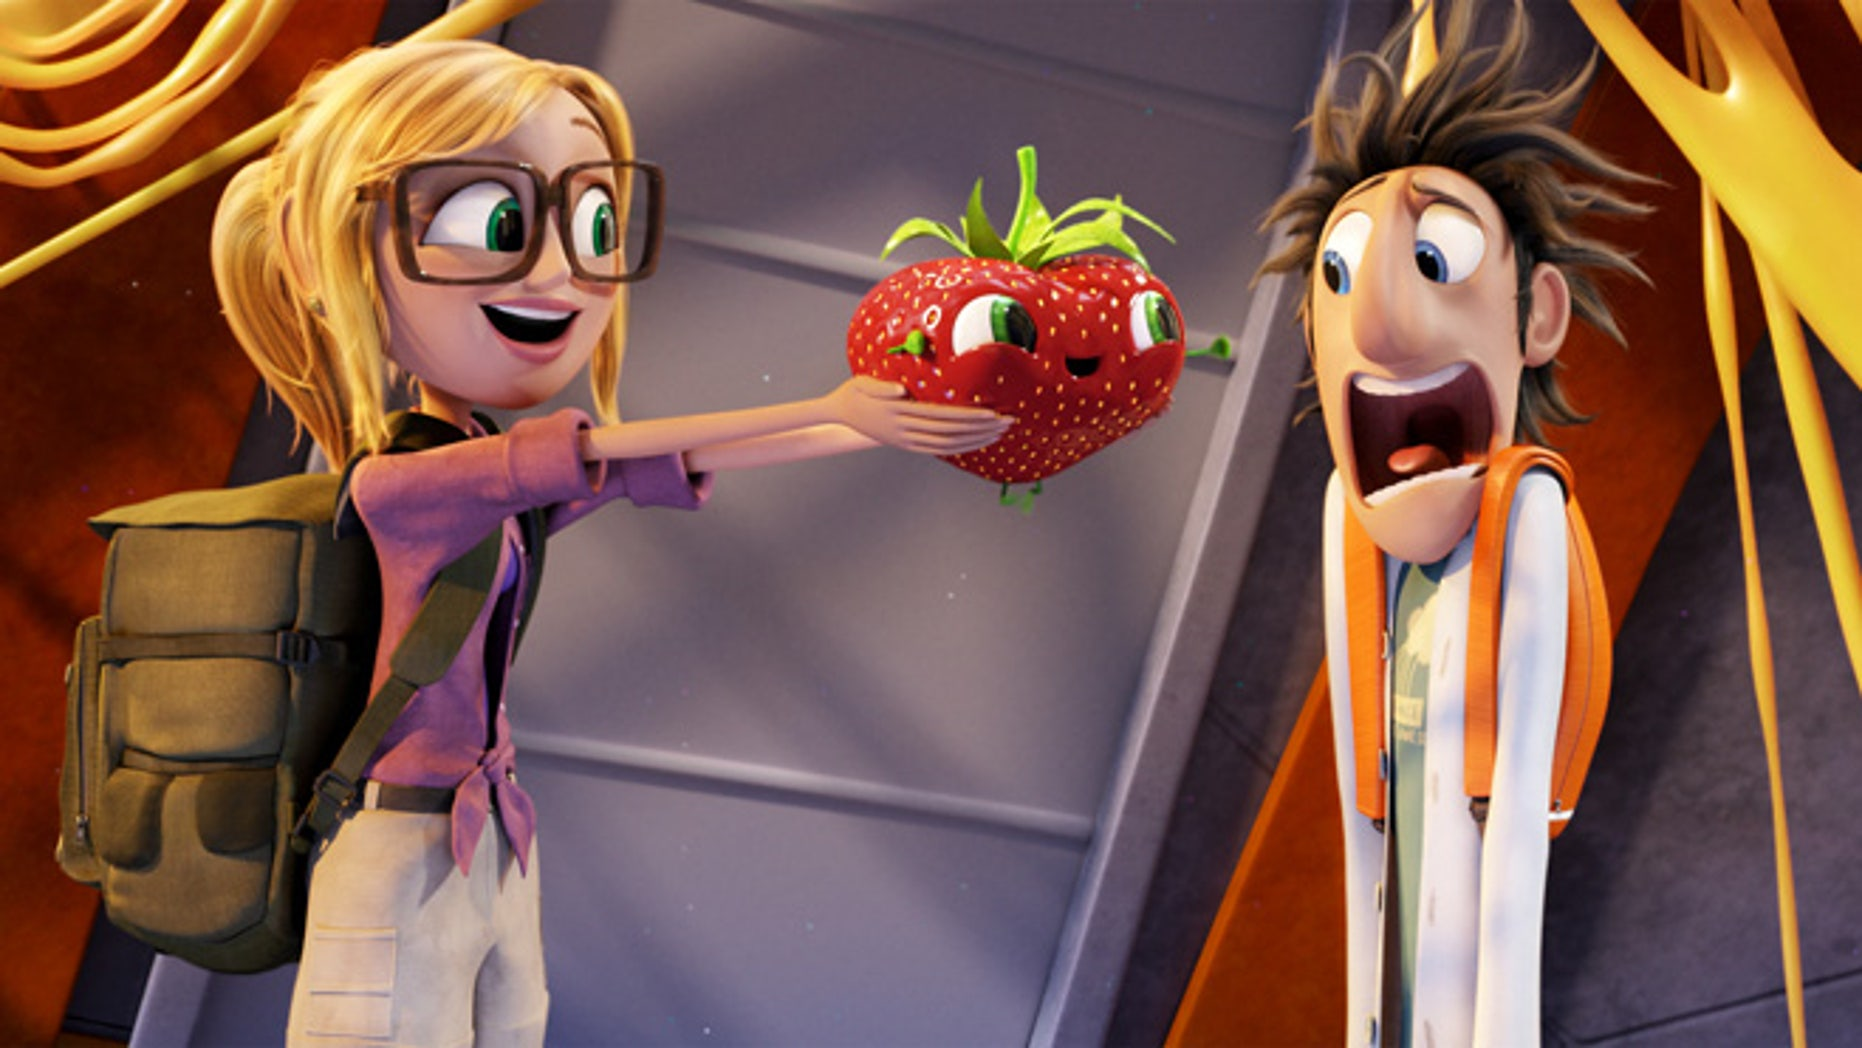 "This film image released by Sony Pictures Animation shows characters, from left, Sam Sparks, voiced by Anna Faris, Barry the Strawberry, voiced by Cody Cameron, and Flint Lockwood, voiced by Bill Hader in a scene from ""Cloudy with a Chance of Meatballs."""